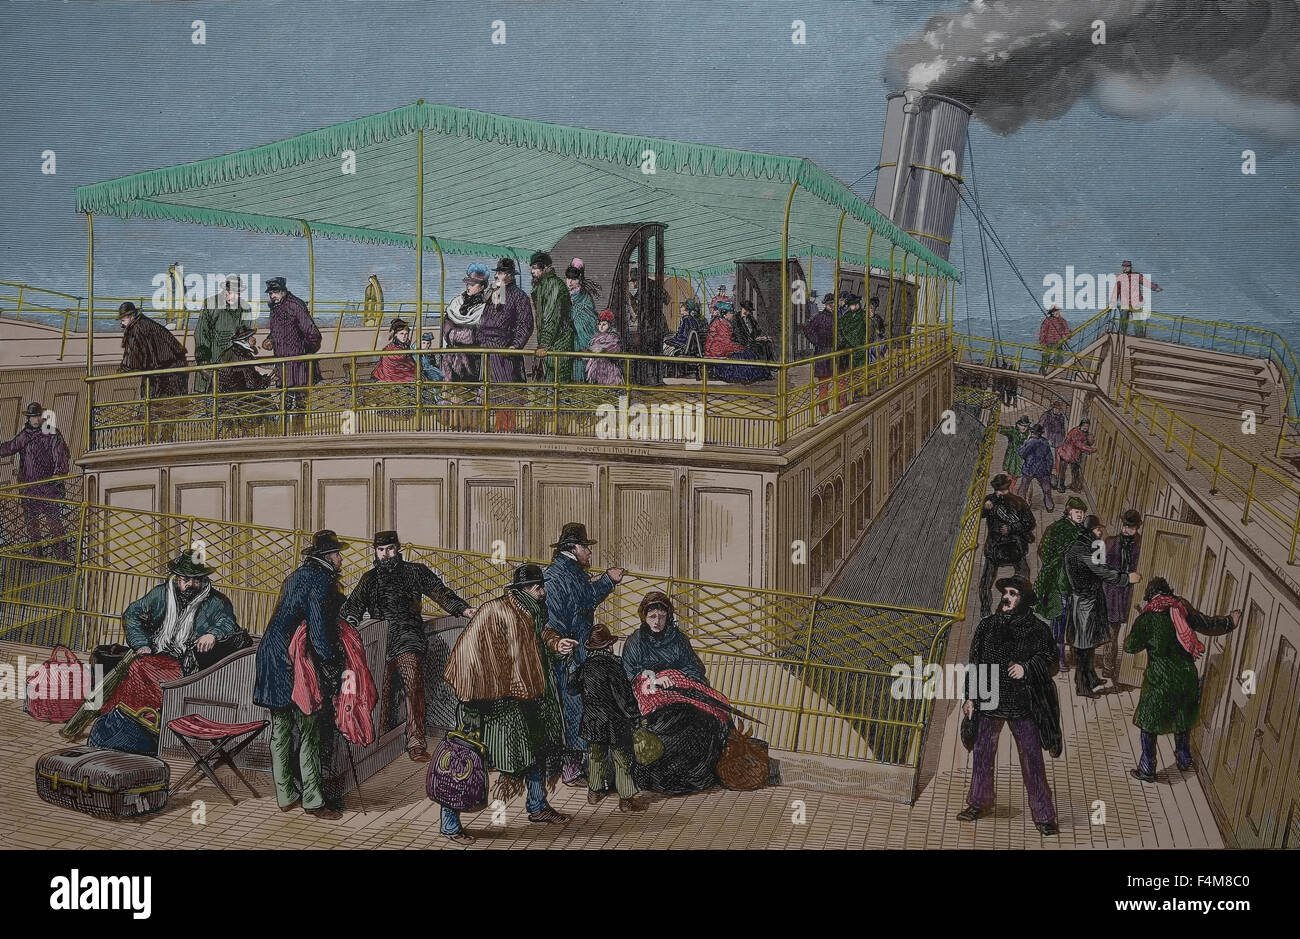 On board the emigrant ship. 19th century. Engraving. Color. - Stock Image